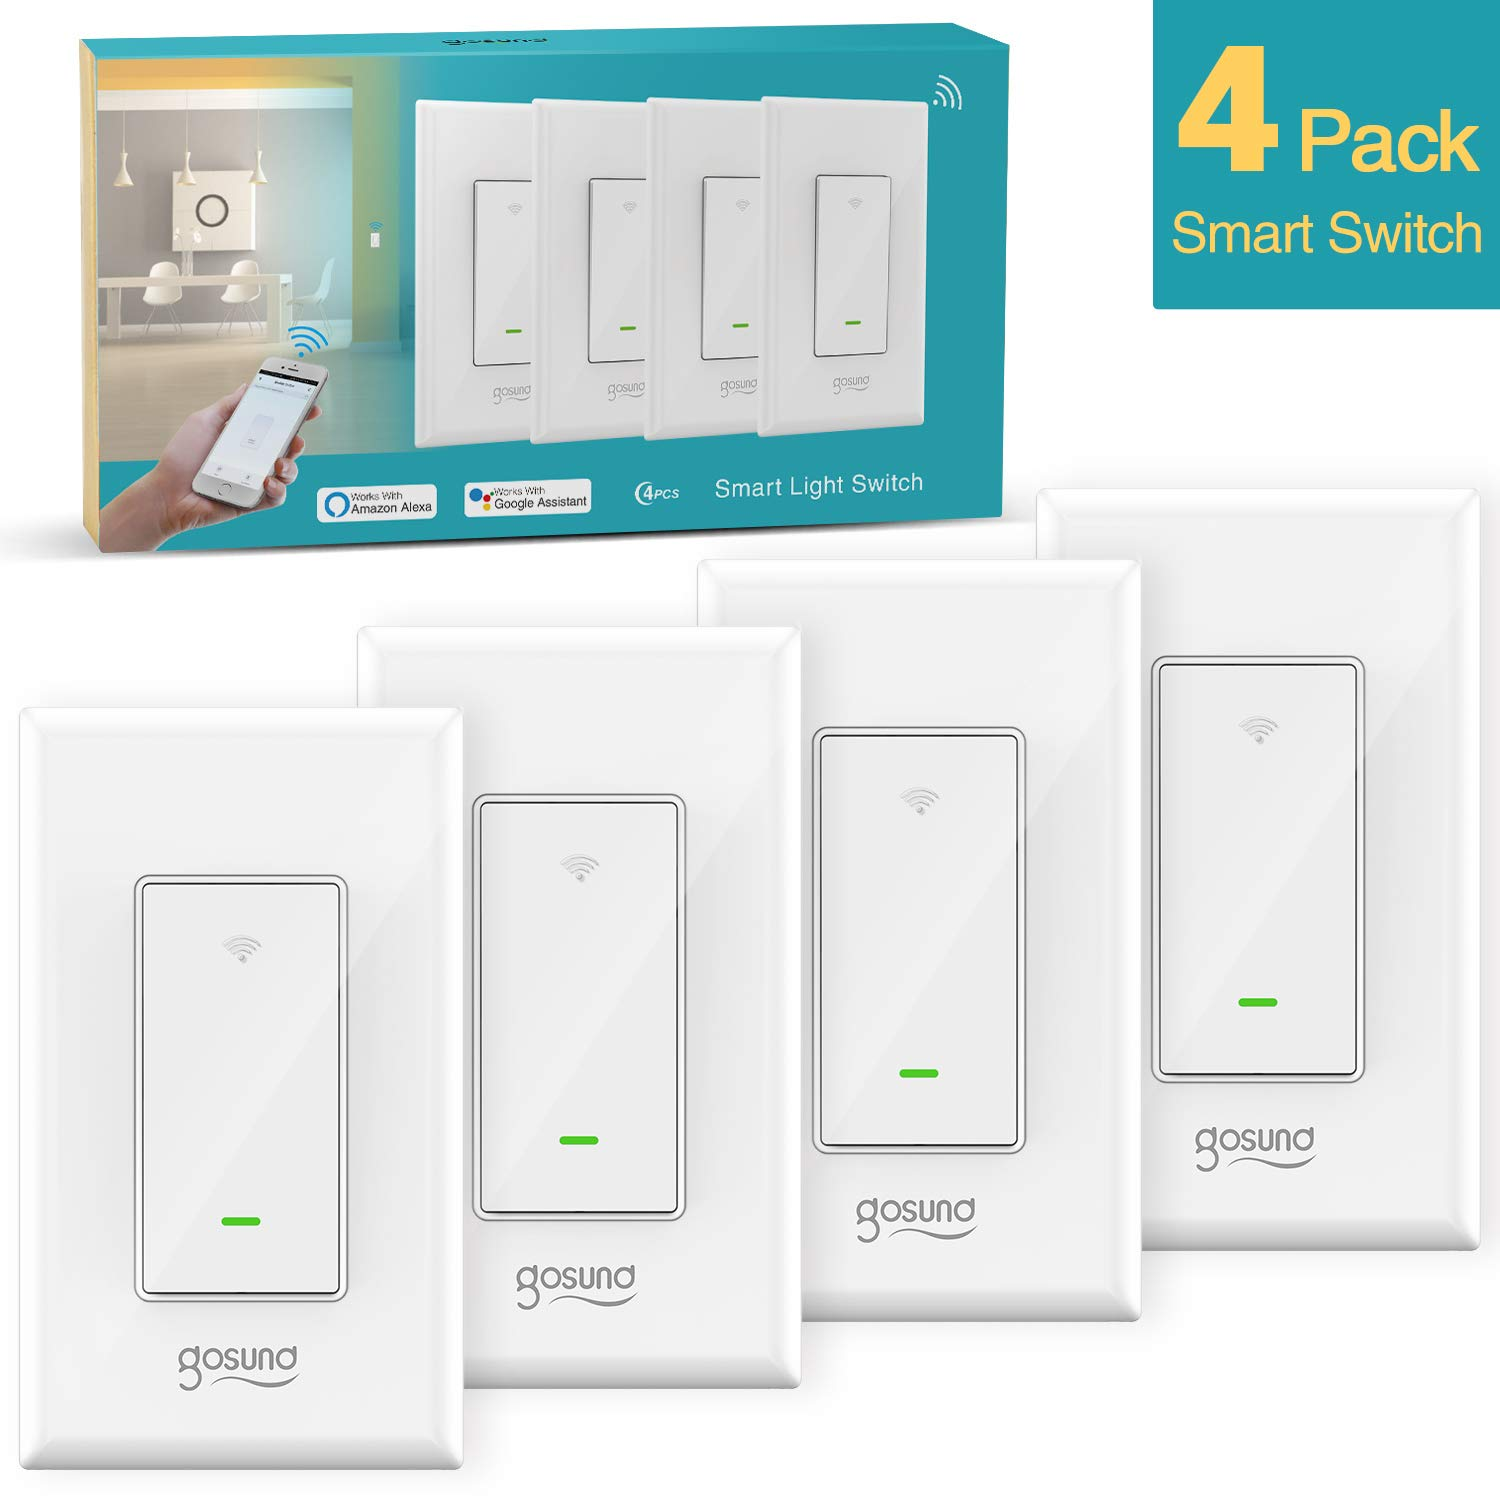 Gosund Smart Light Switch, 15A In-wall Wifi Switch that Works with Alexa and Google Home, Single-Pole only, Neutral Wire Needed, No Hub Required, ETL and FCC Listed,4 Pack White by TanTan